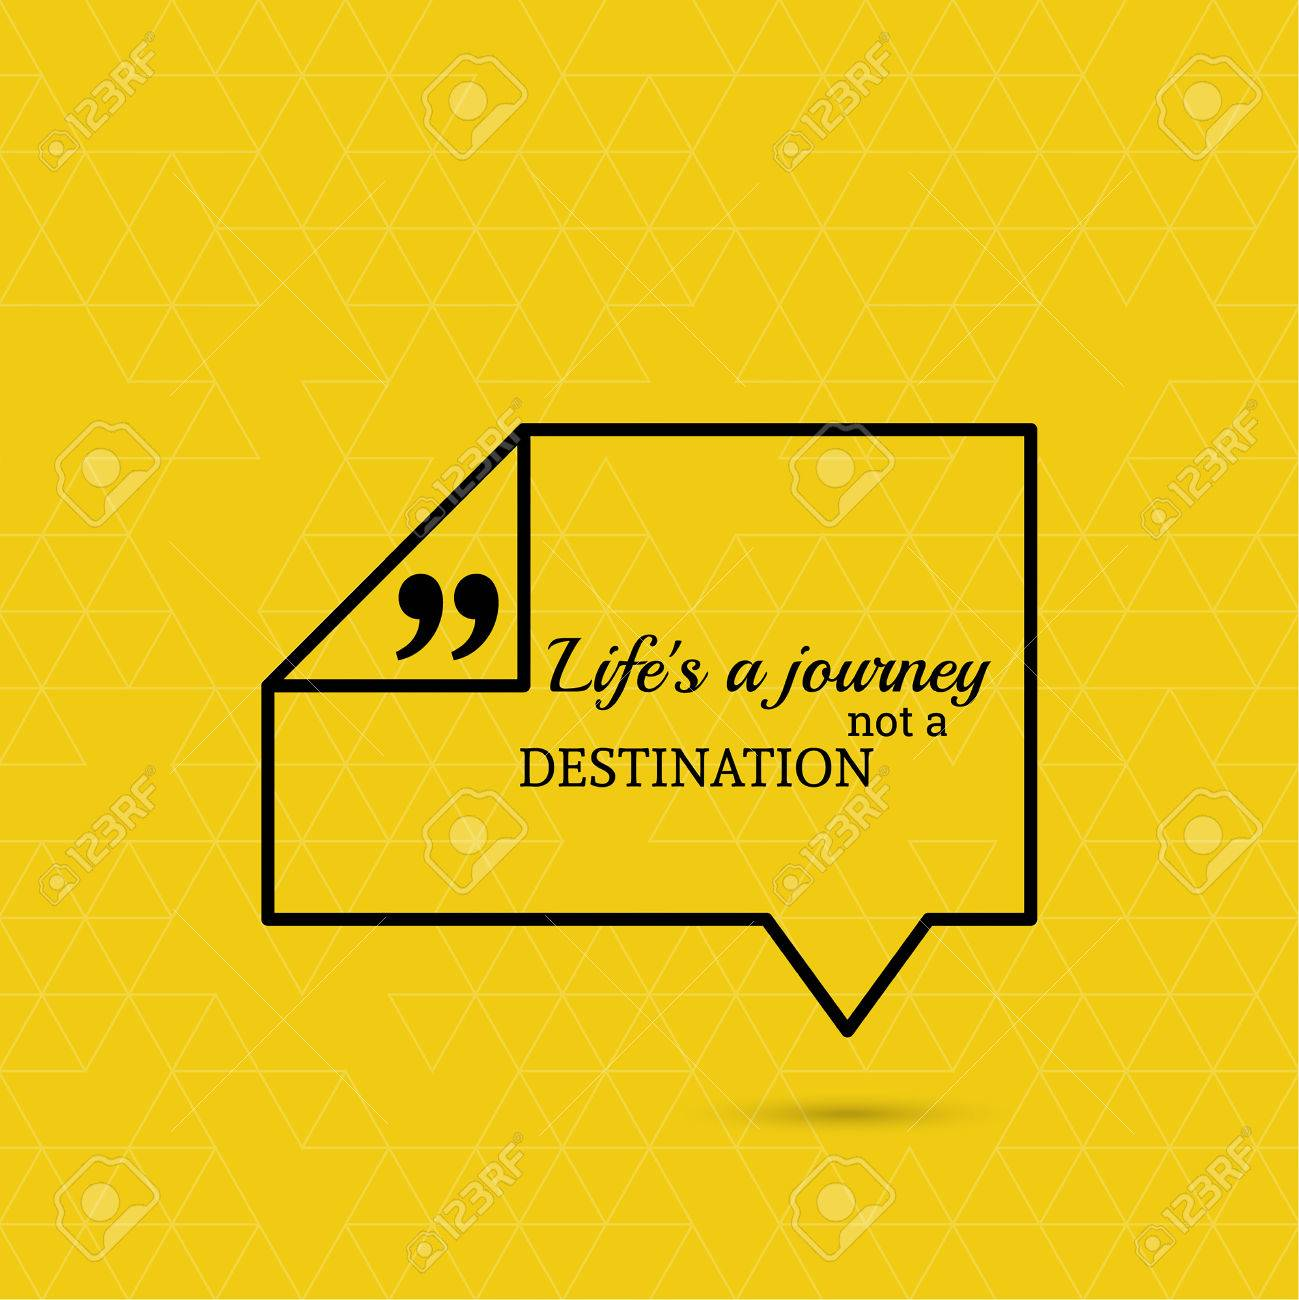 Wise Sayings And Quotes About Life Inspirational Quotelife Is A Journey Not A Destinationwise